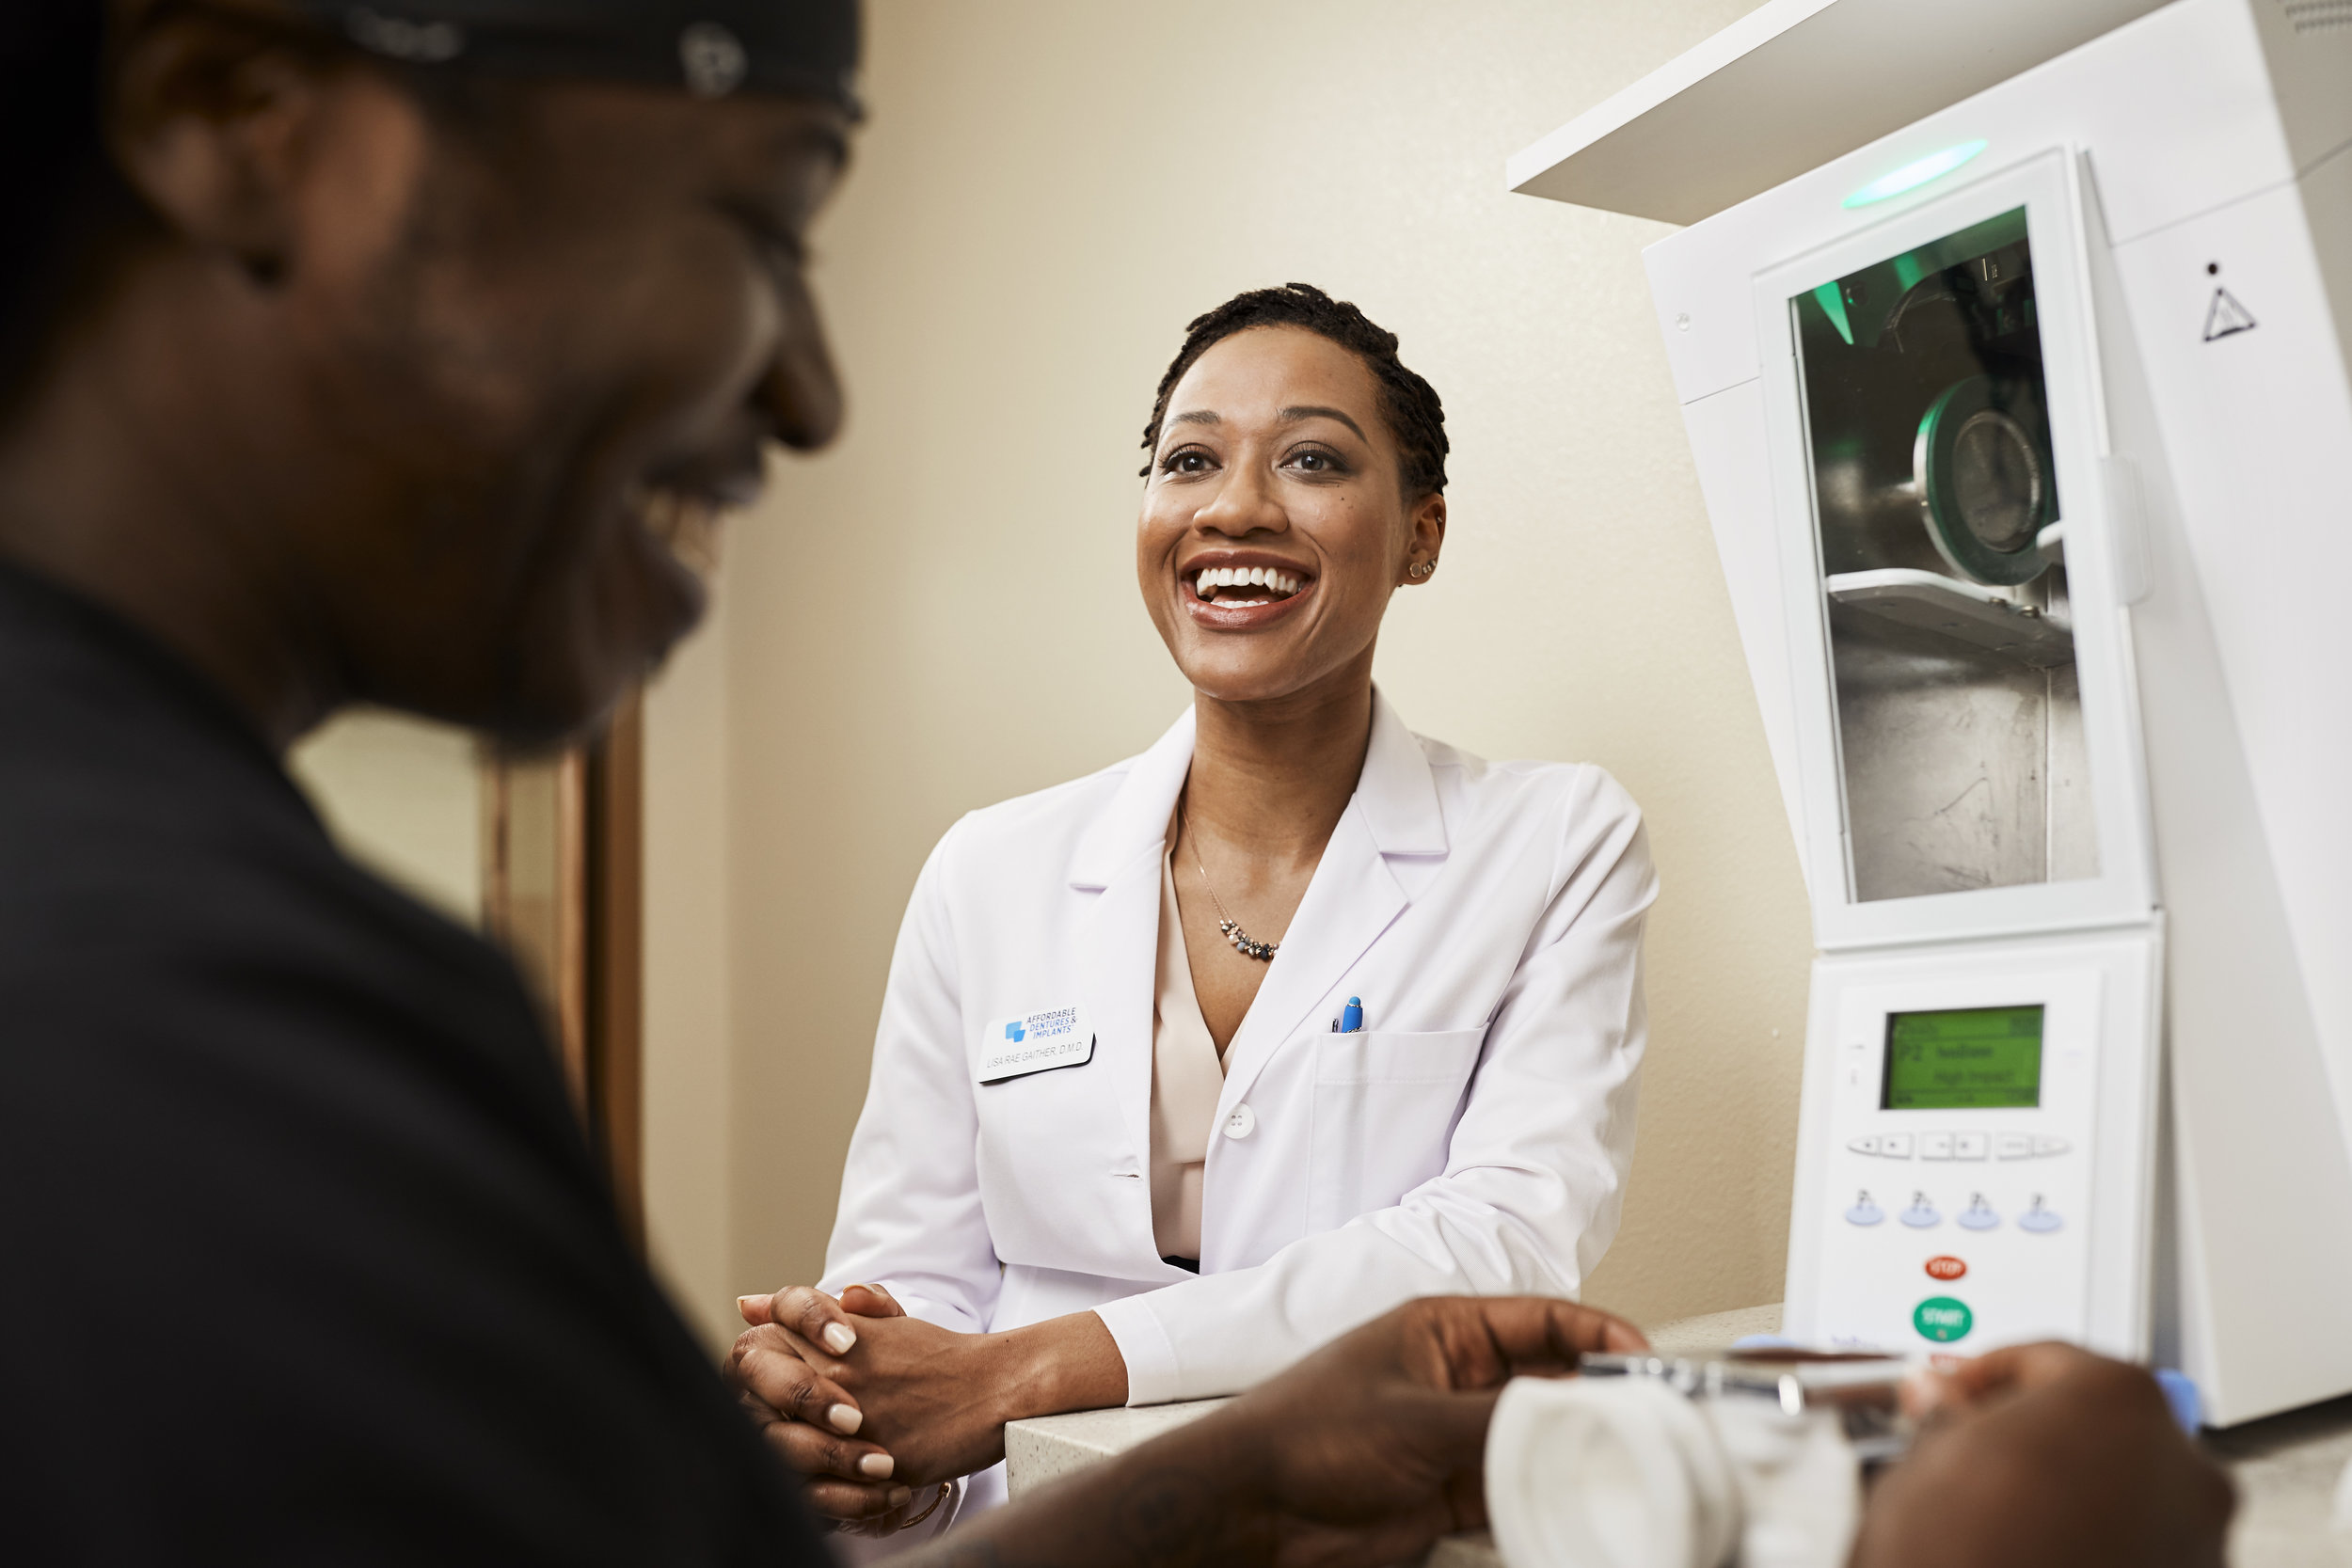 AD&I's standards for continual learning enhance an employee's individual skills and value. For an AD&I doctor, having full trust and confidence in your team's abilities is vital to a practice's success.